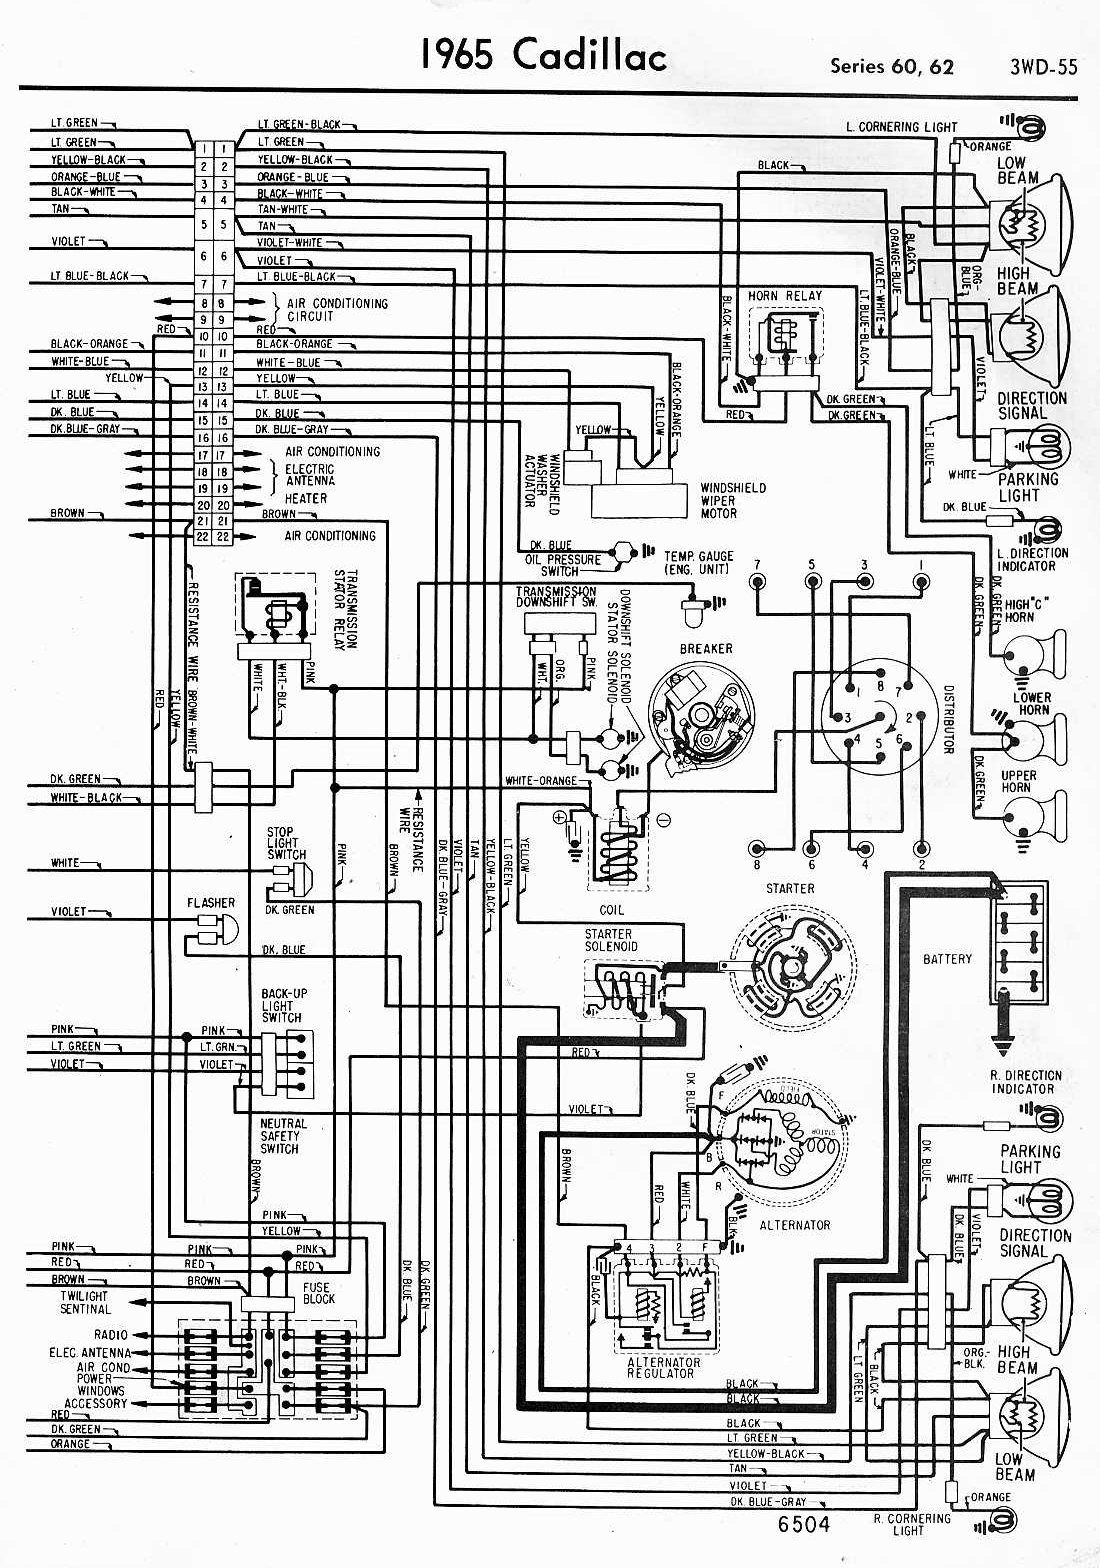 67 Cadillac Wiring Diagram Trusted Diagrams 1954 Wire Data Schema U2022 1977 Seville Headlight